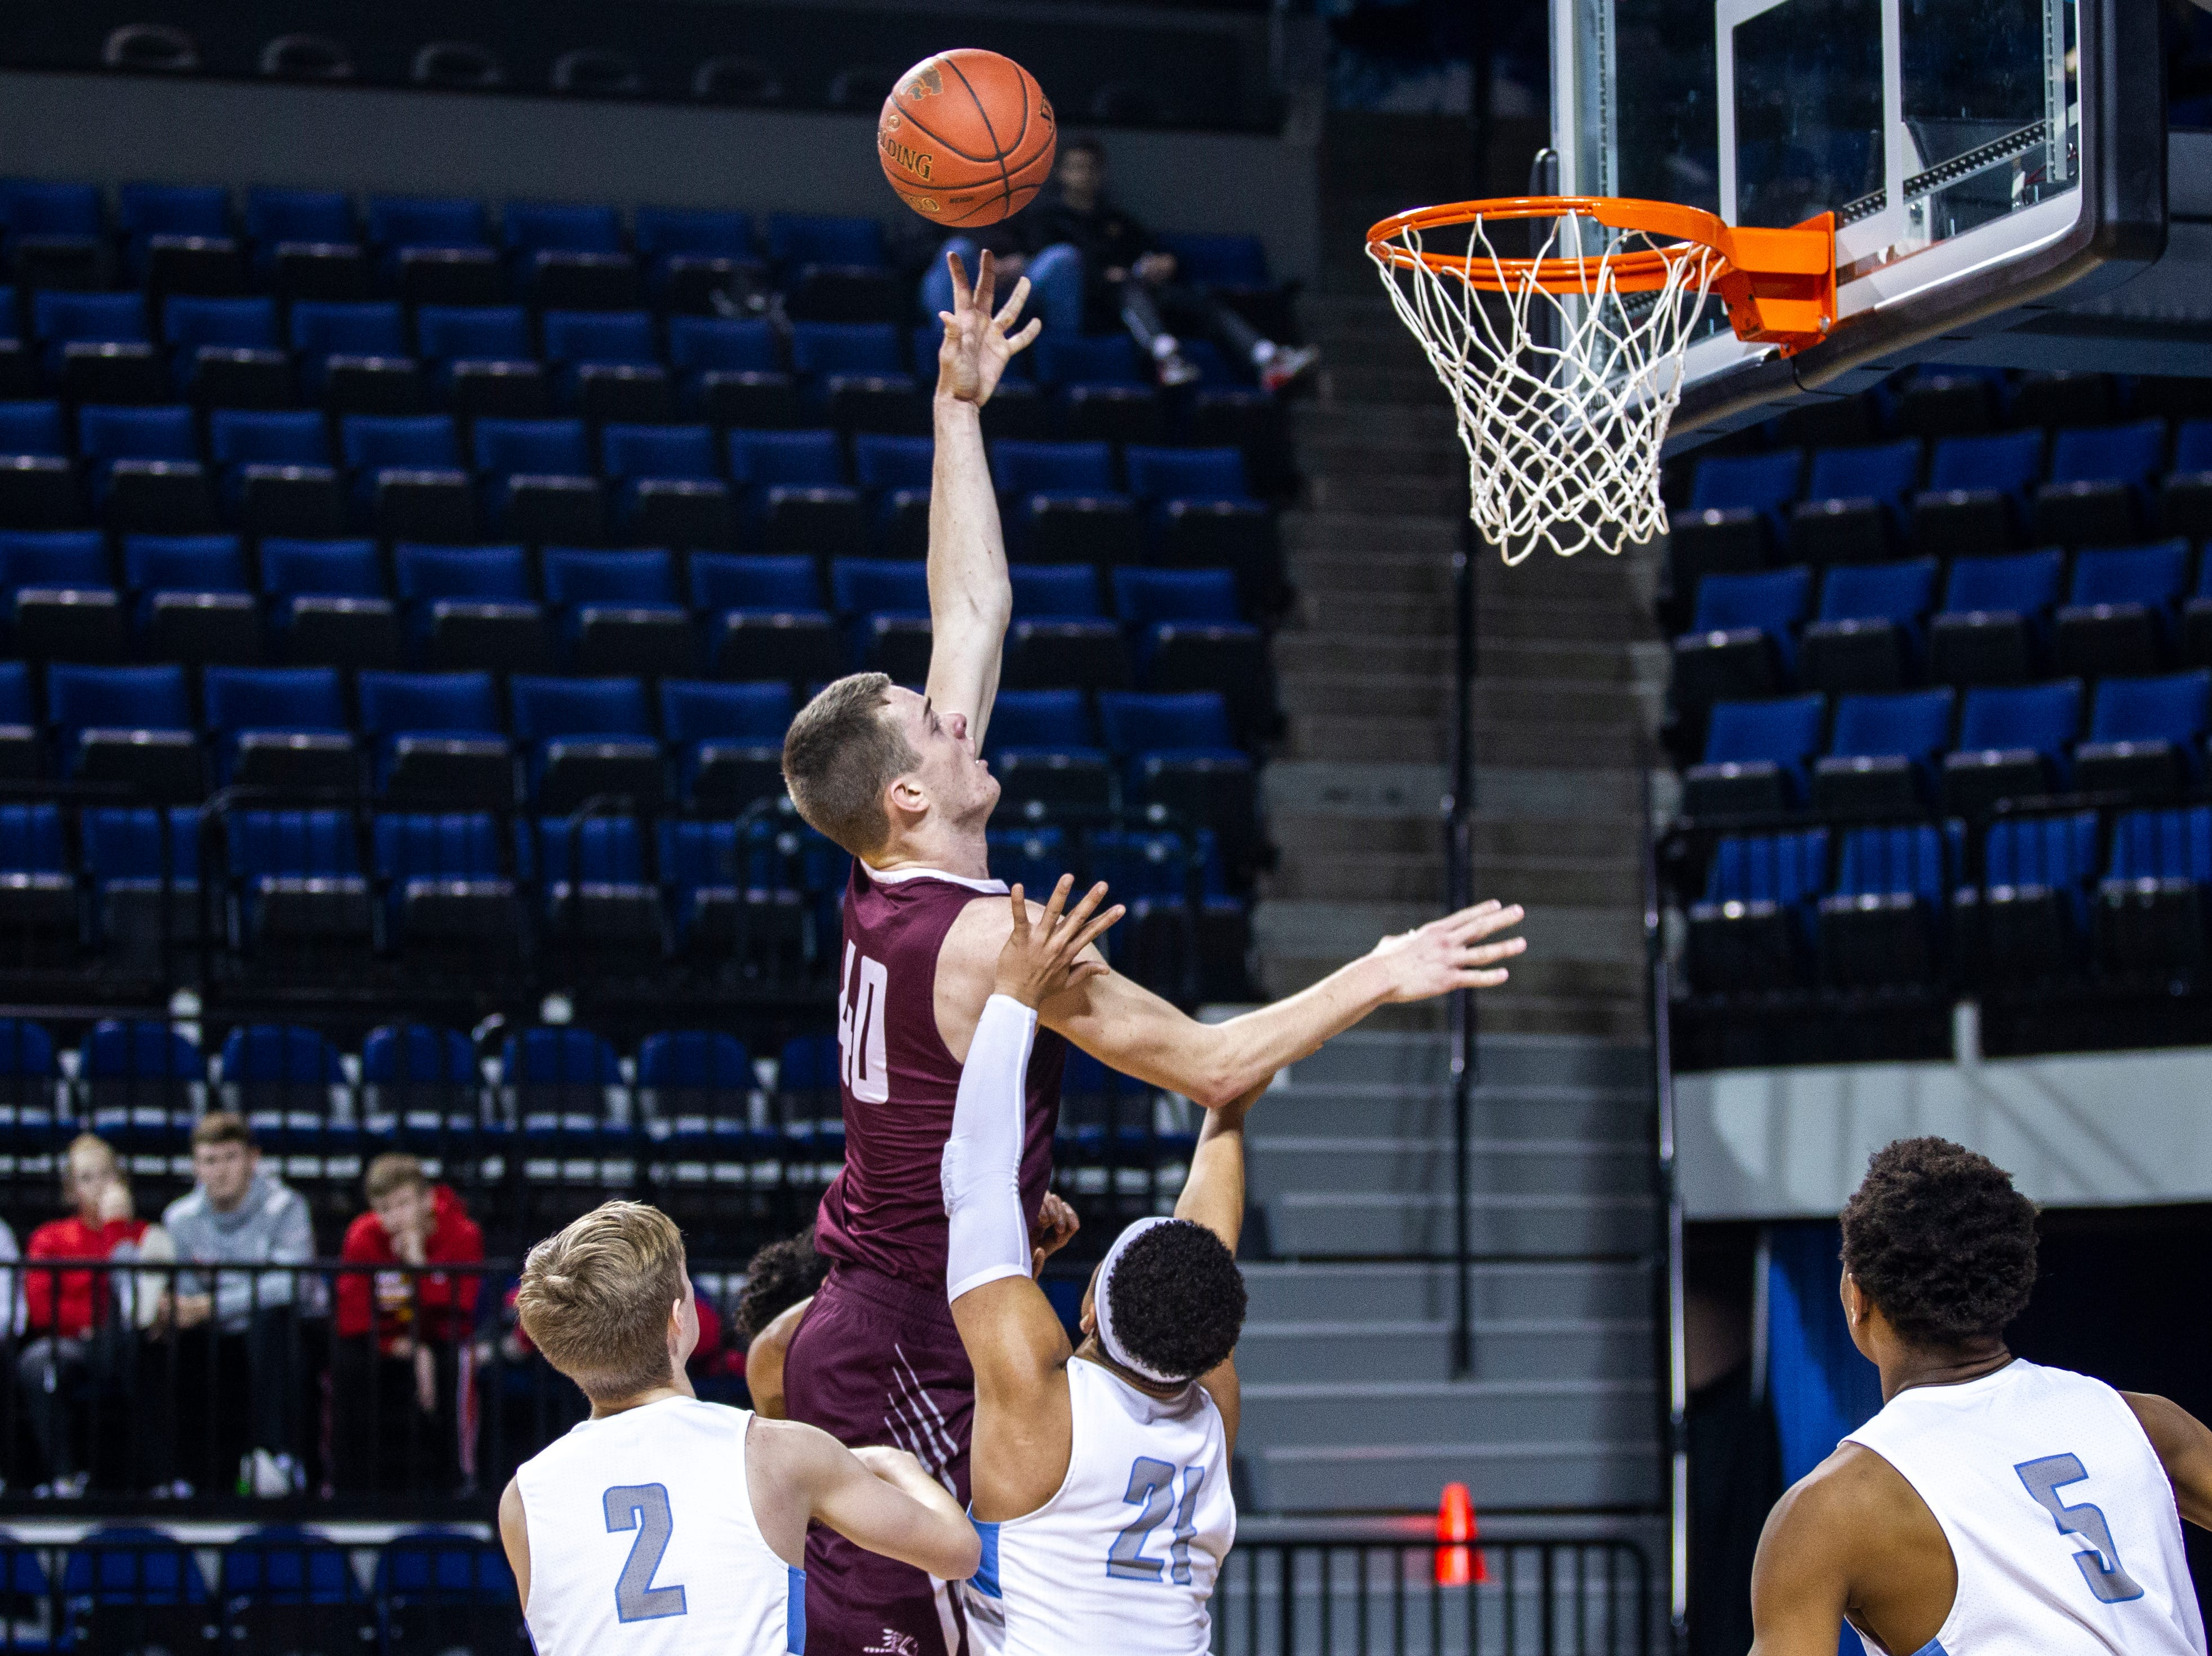 Oskaloosa's Cole Henry (40) attempts a basket during a boys' basketball game in the Wells Fargo Advisors Shootout on Saturday, Jan. 19, 2019, at the U.S. Cellular Center in Cedar Rapids, Iowa.